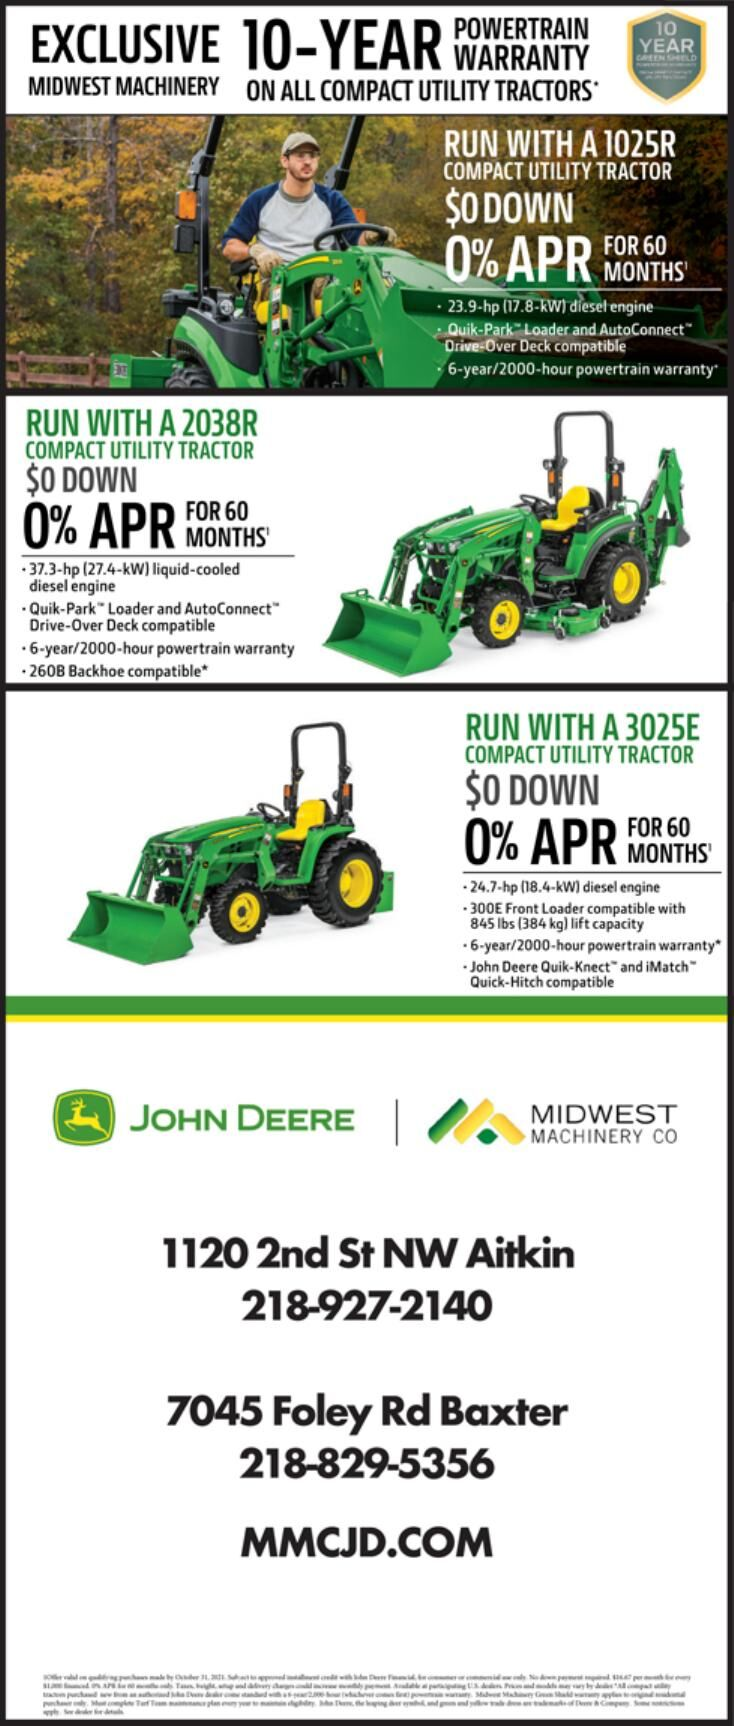 Midwest Machinery 6-5-21